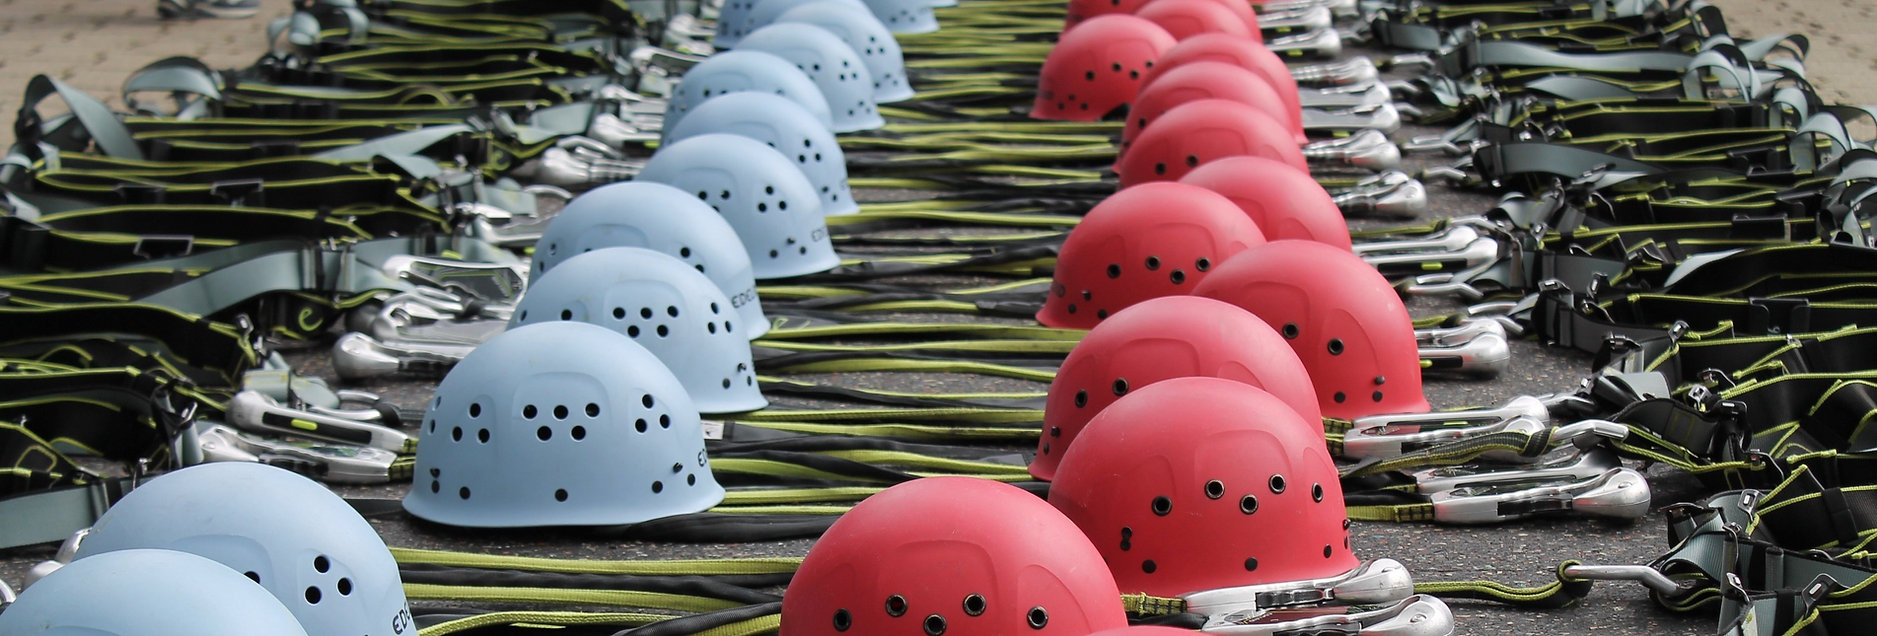 Rock climbing helmets and technical gear displayed for an outdoor program risk management assessment